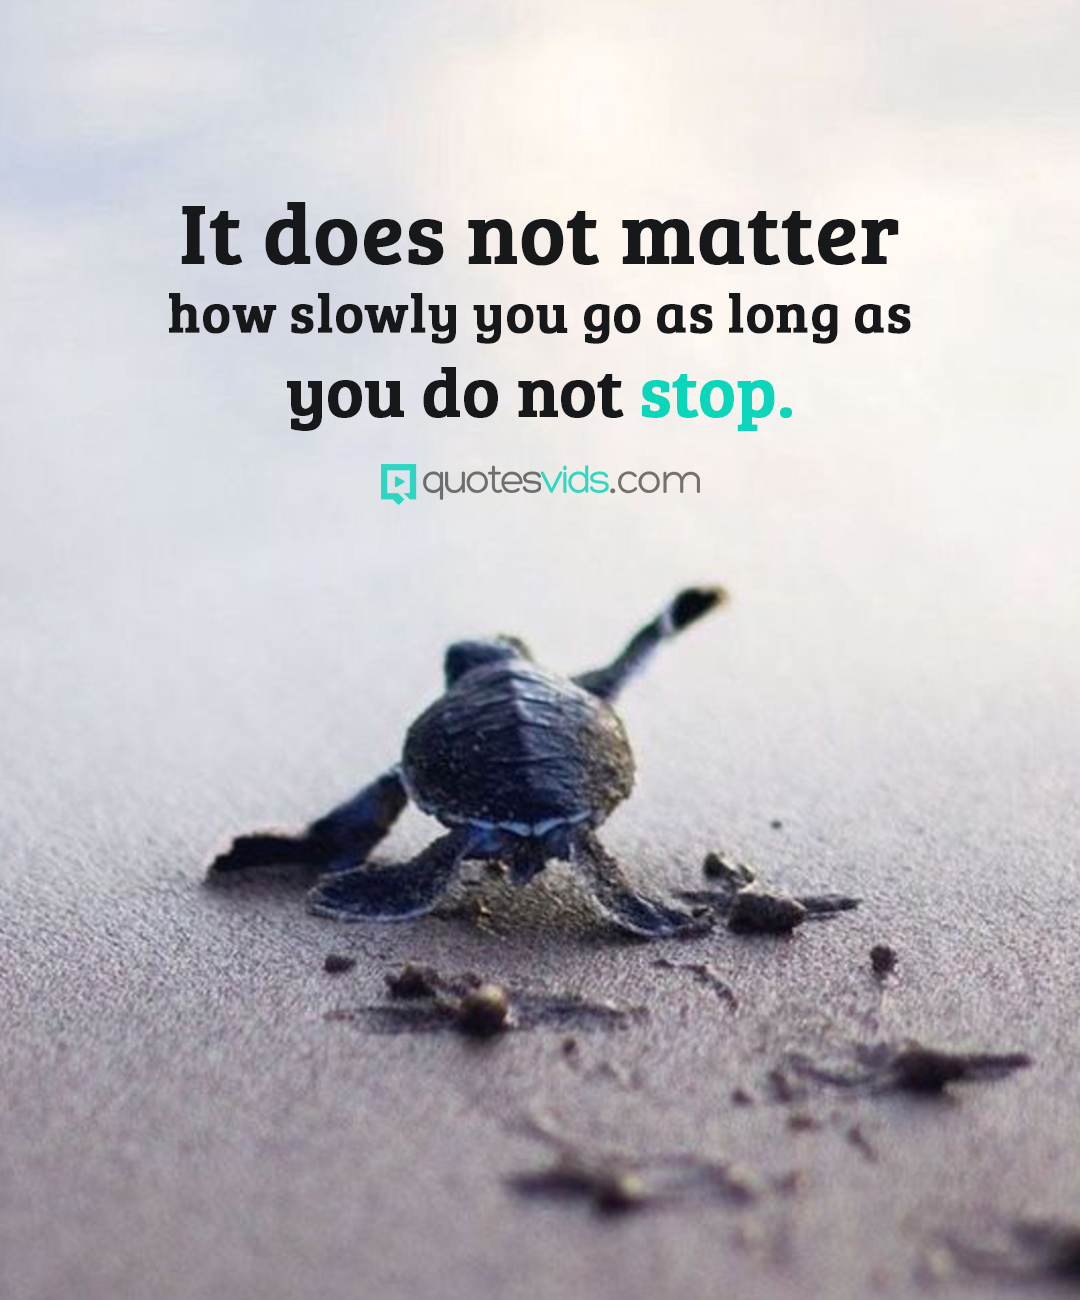 """It does not matter how slowly you go as long as you do not stop"" – unknown [1800×1300]"